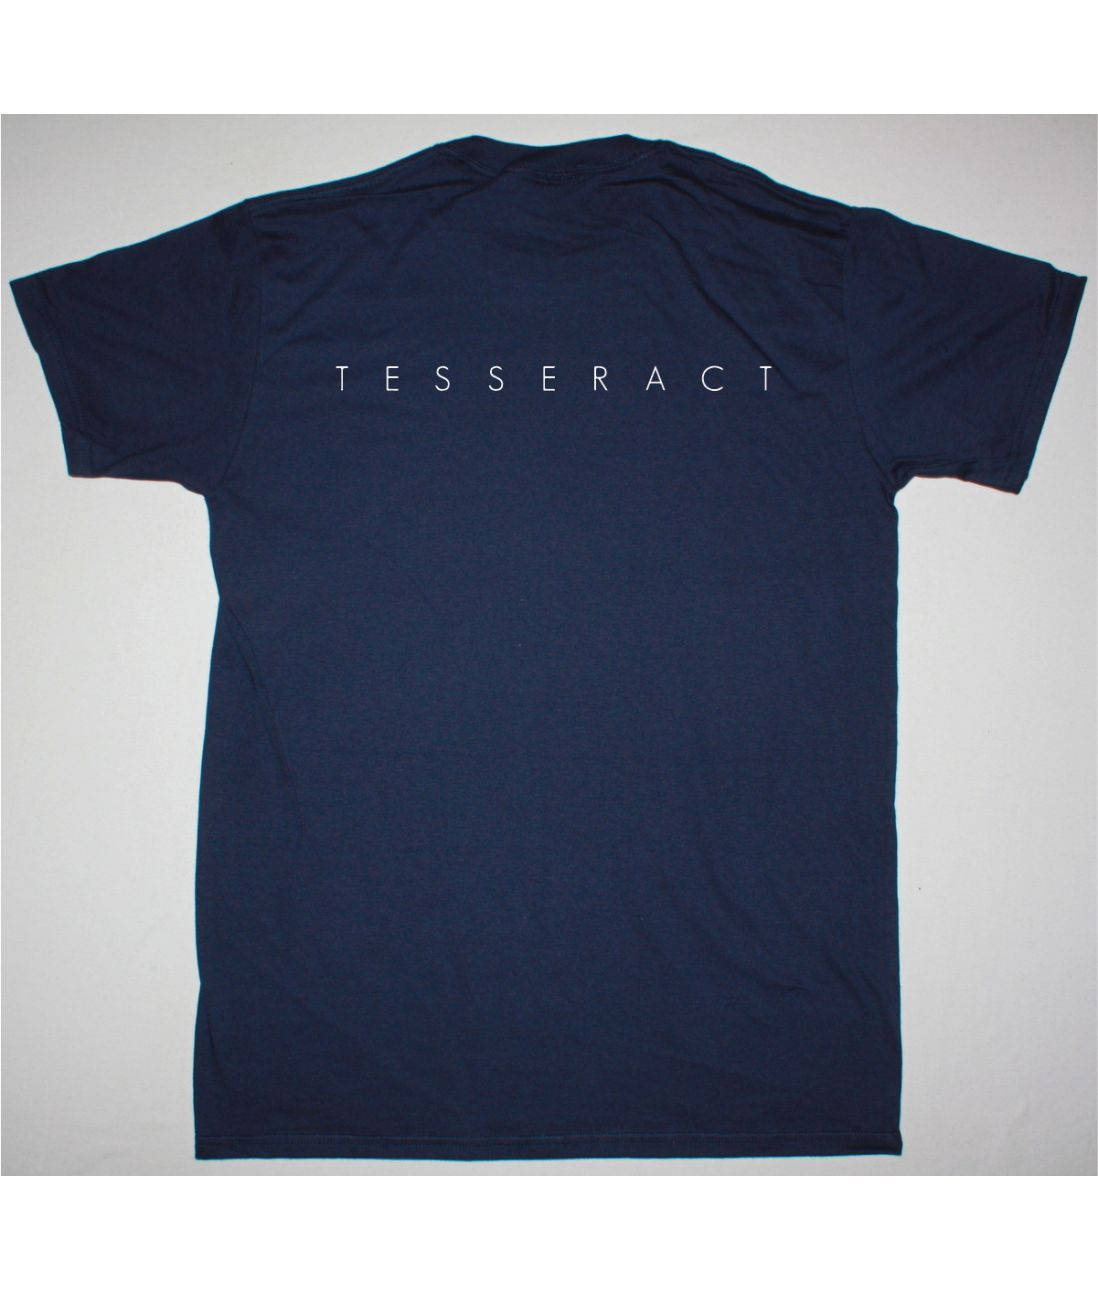 TESSERACT ALTERED STATE NEW NAVY T SHIRT